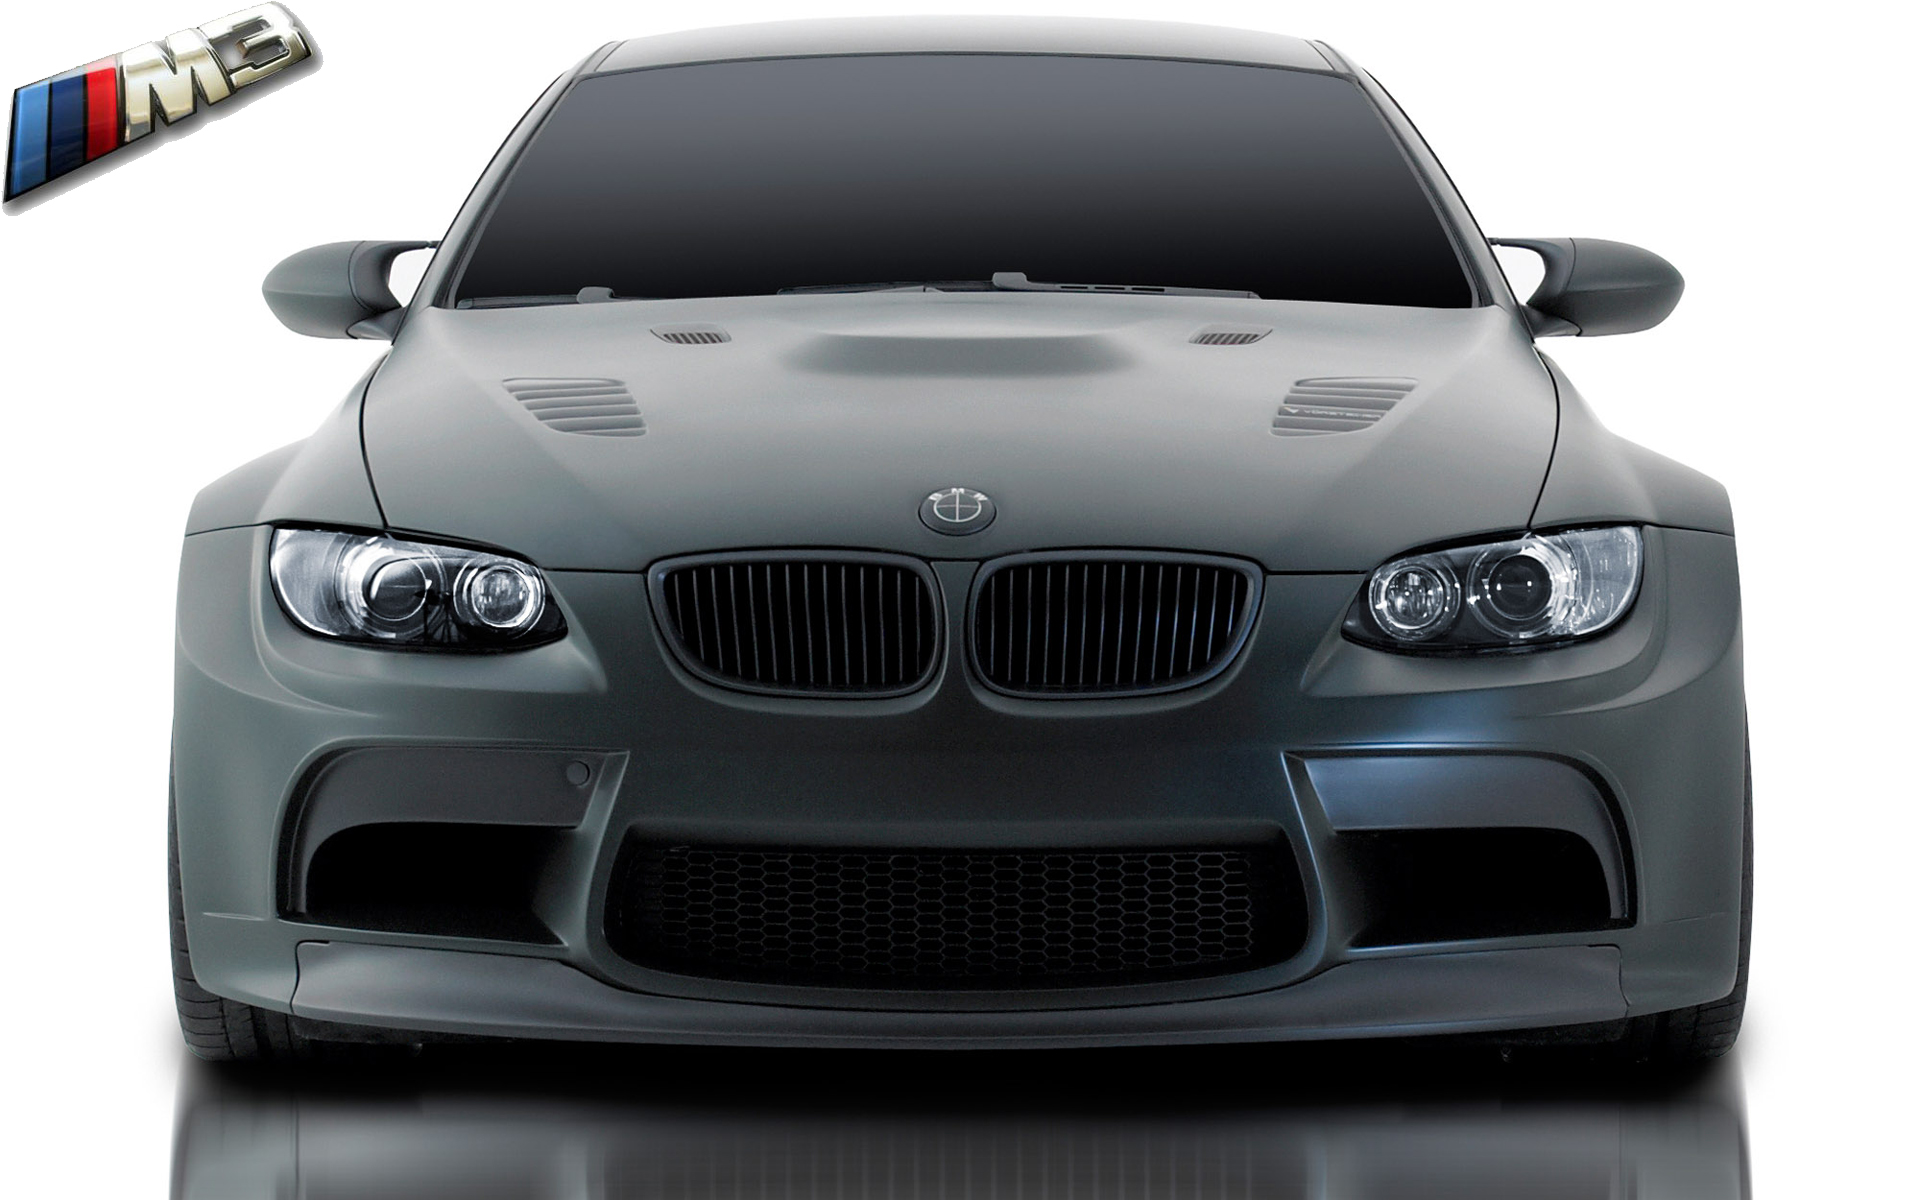 bmw m3 gtrs3 wallpapers-#21